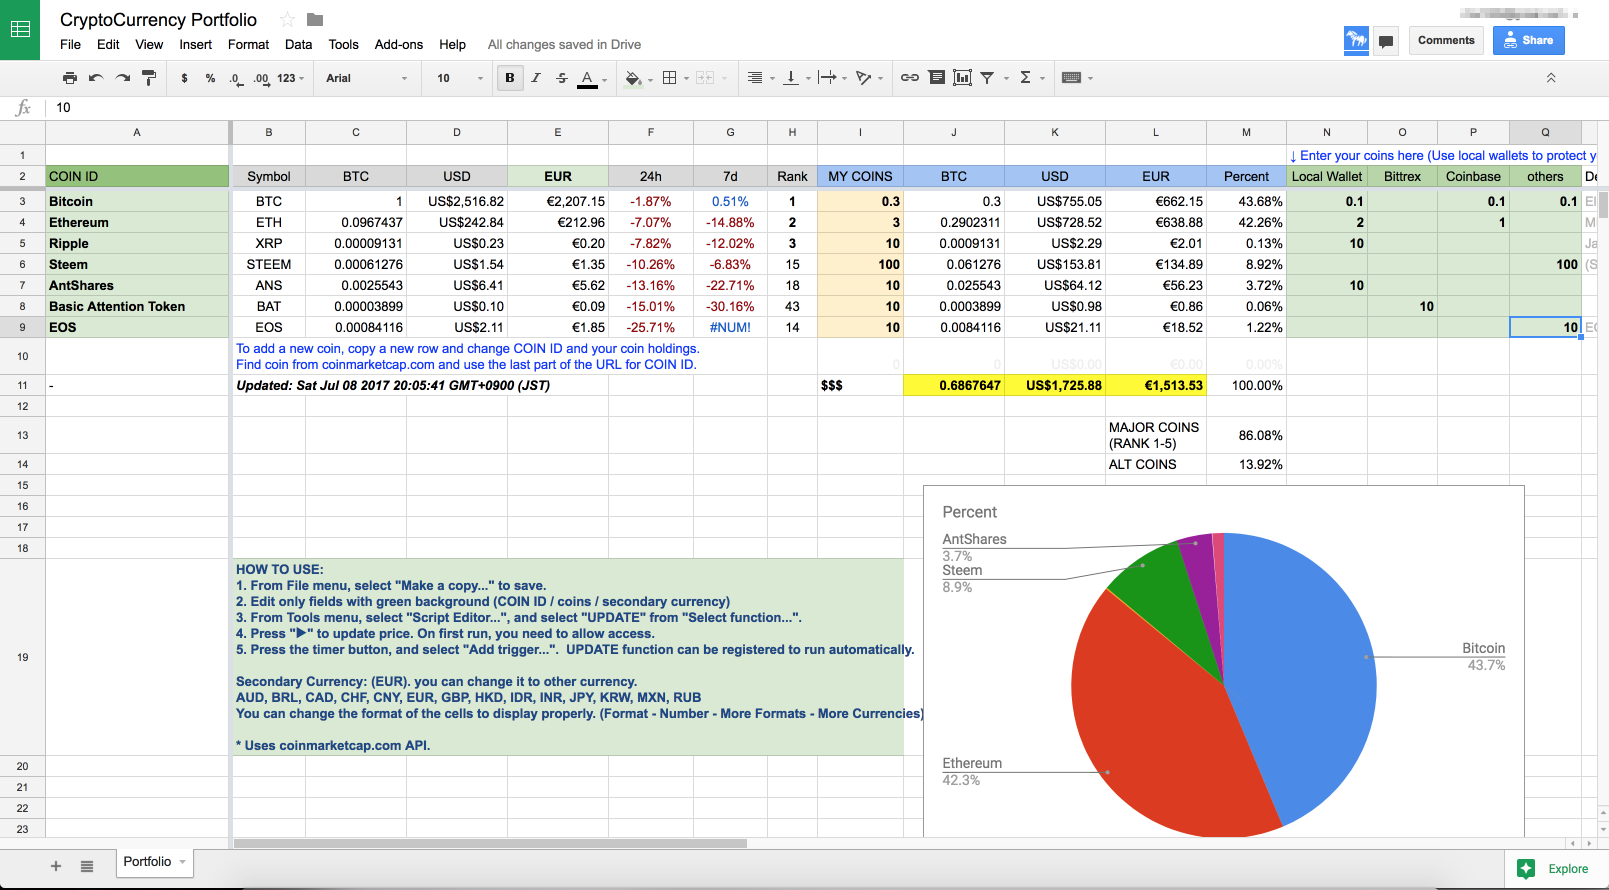 Cryptocurrency Excel Spreadsheet In Cryptocurrency Portfolio Template For Google Sheets — Steemit